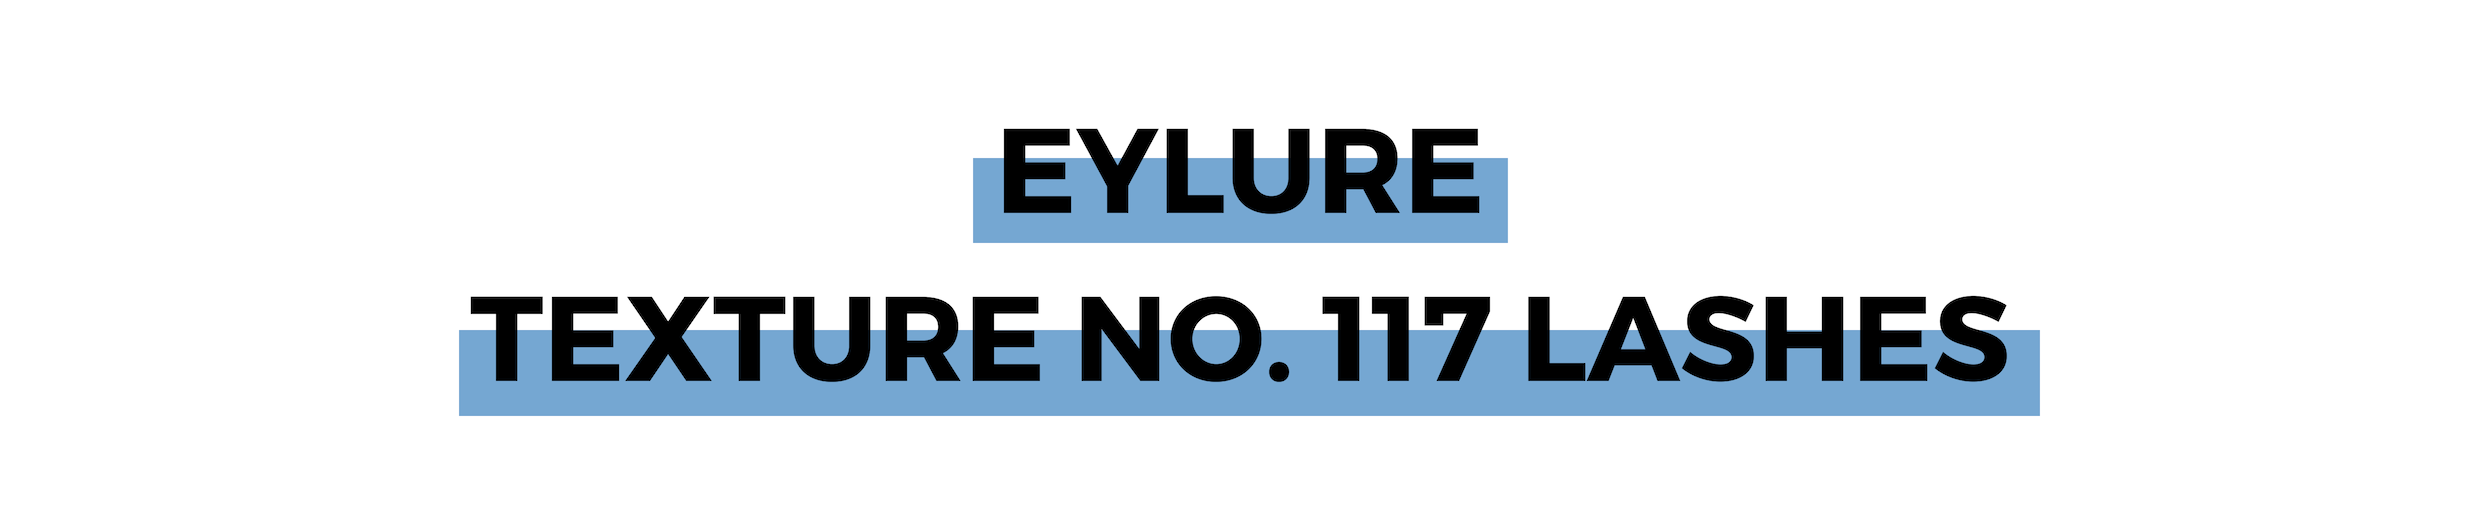 EYLURE TEXTURE NO. 117 LASHES.png